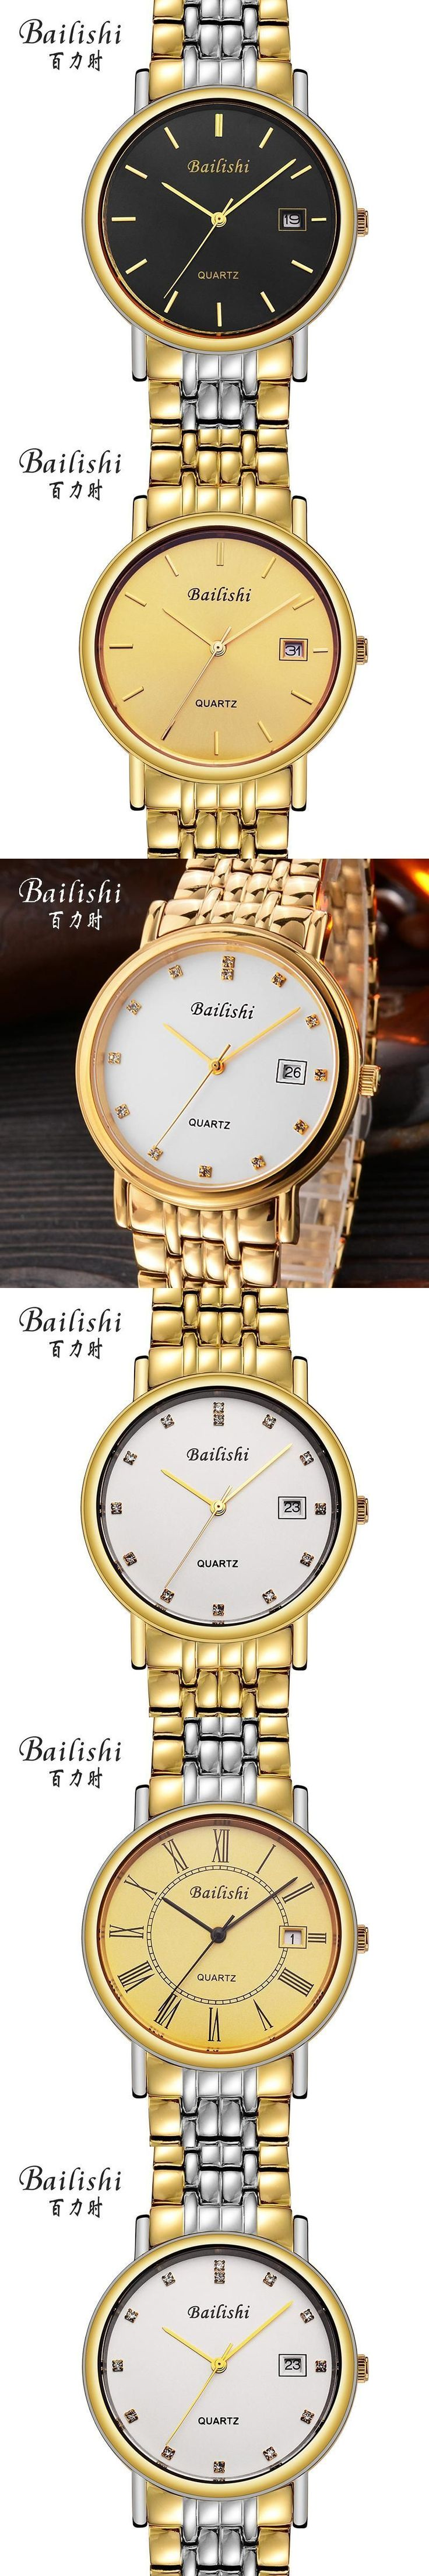 Bailishi Full Gold Watch Mens Watches Top Brand Luxury Waterproof Quartz-watch Steel Wrist watches for Men relojes hombre 2017 #wristwatches